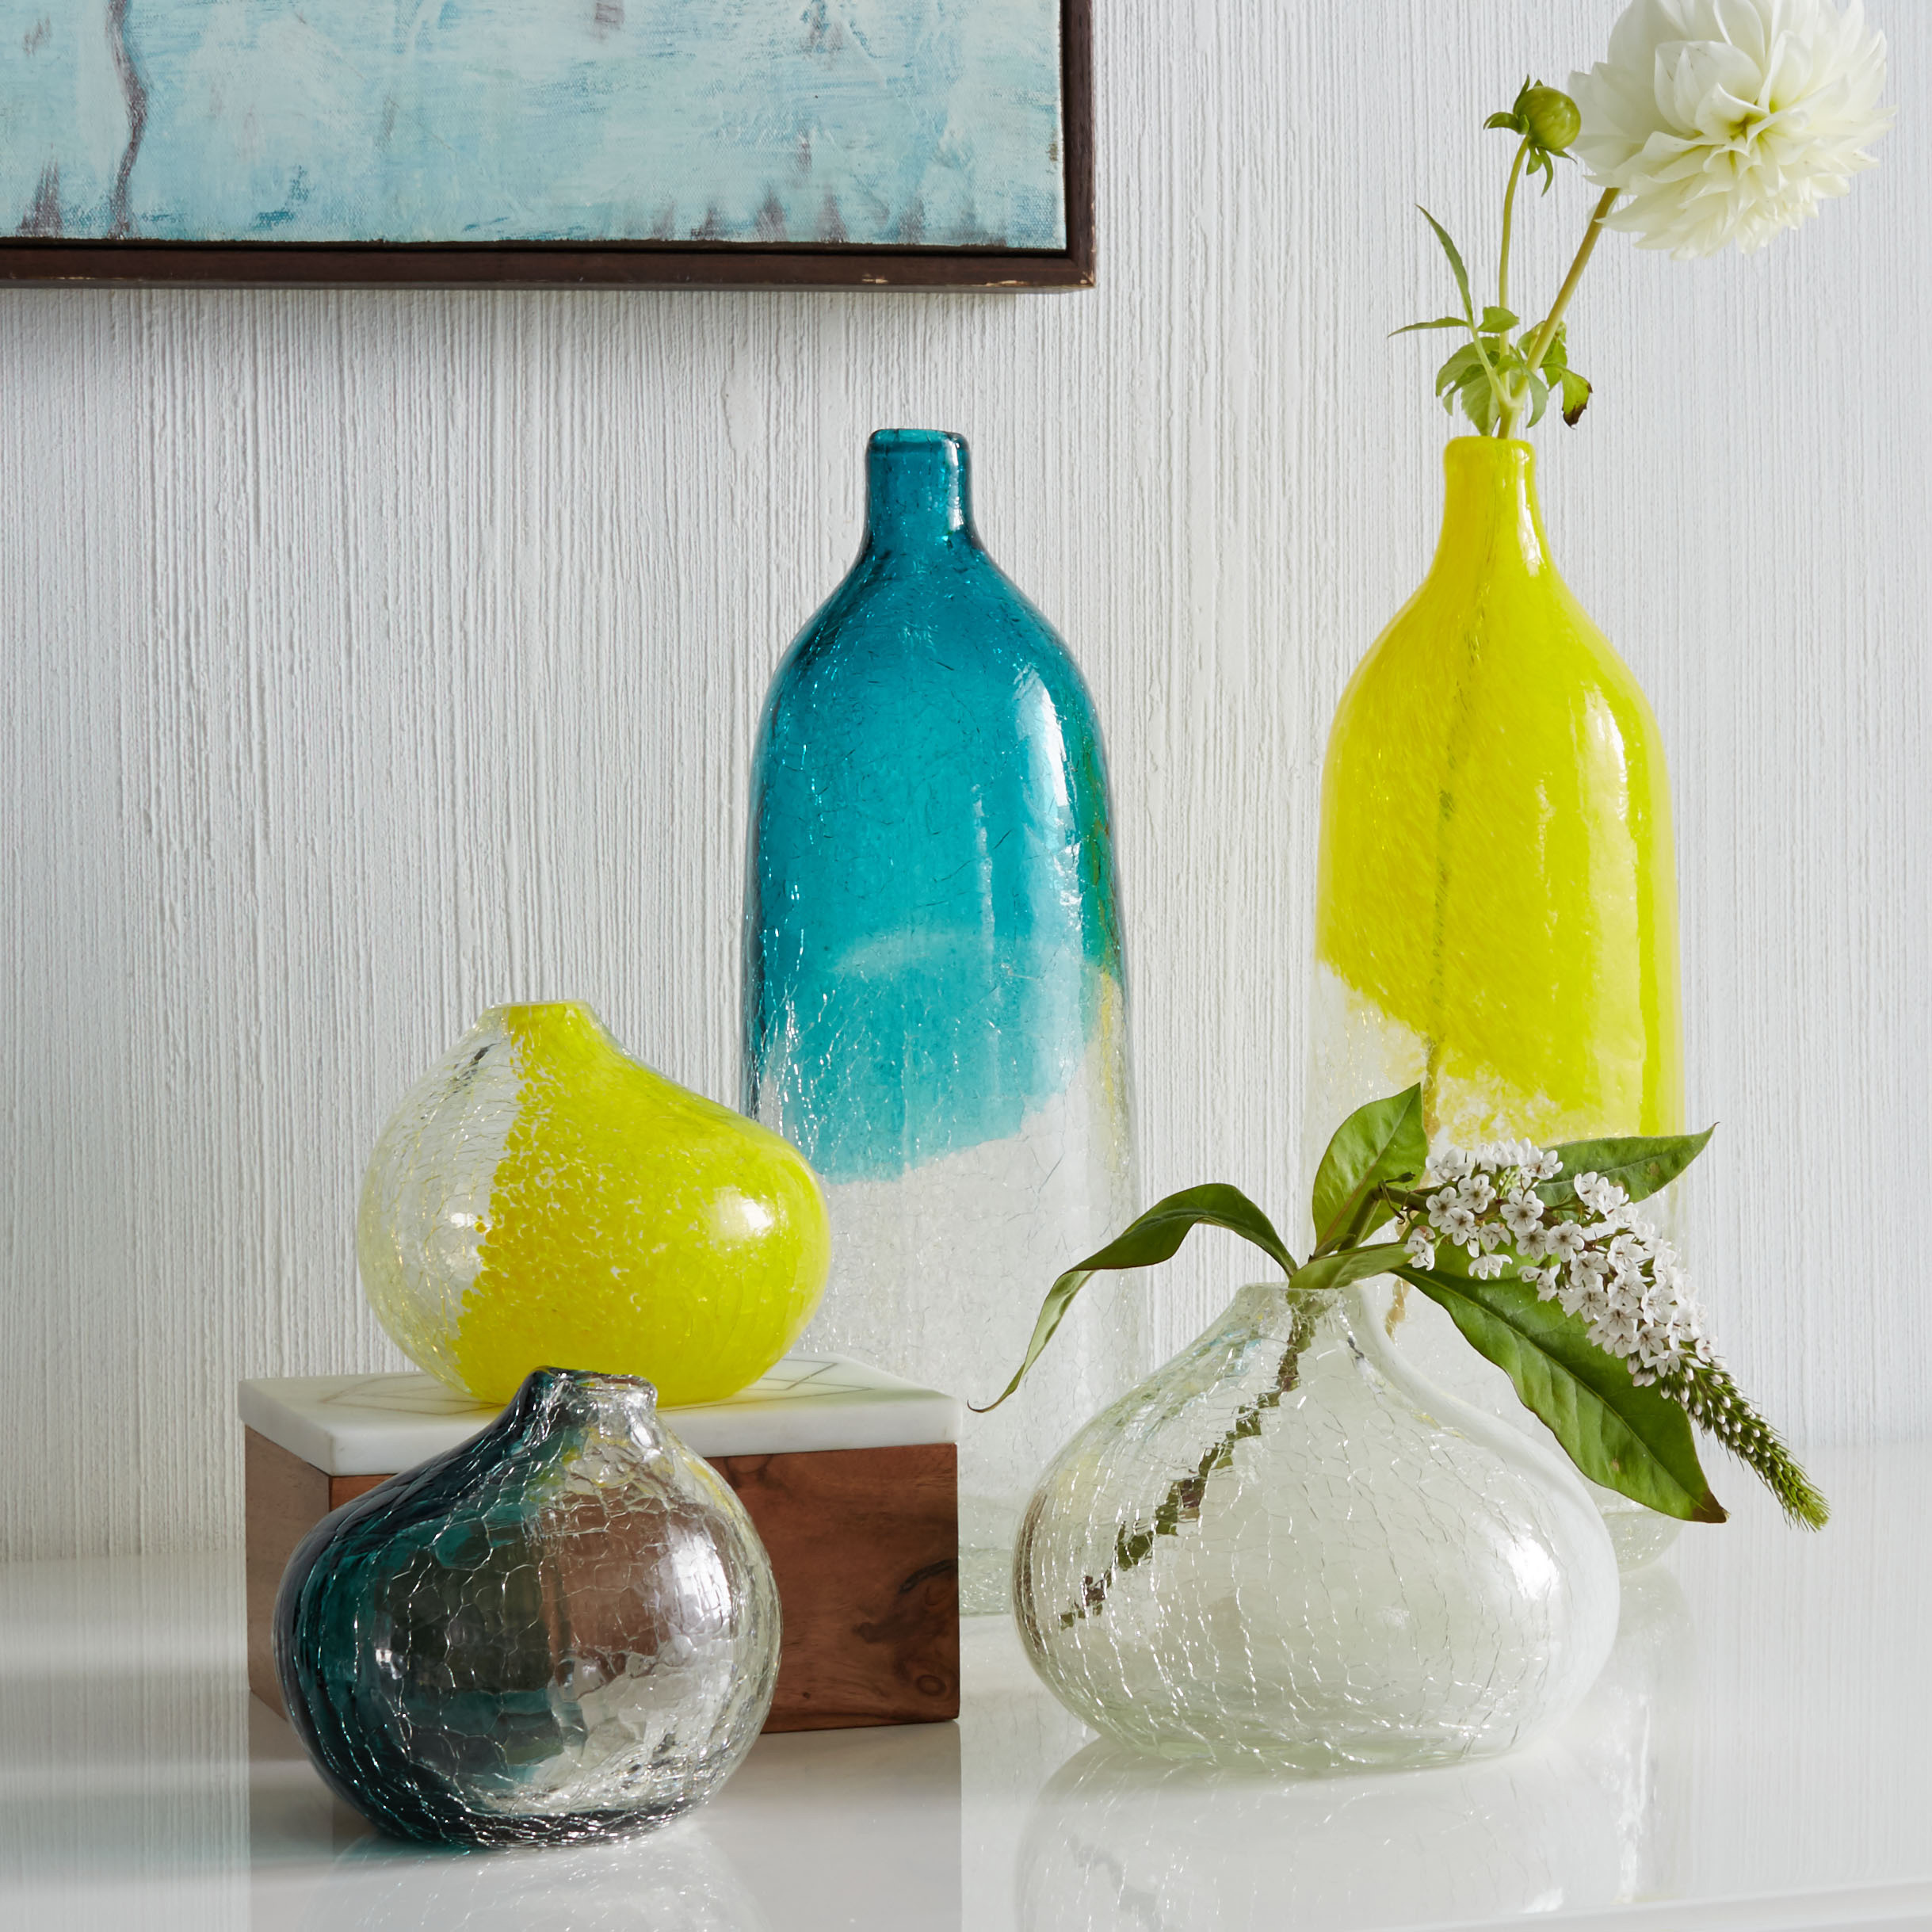 west elm bud vase of the newest arrivals at west elm announce the summer season rogue for cracked glass vases west elm